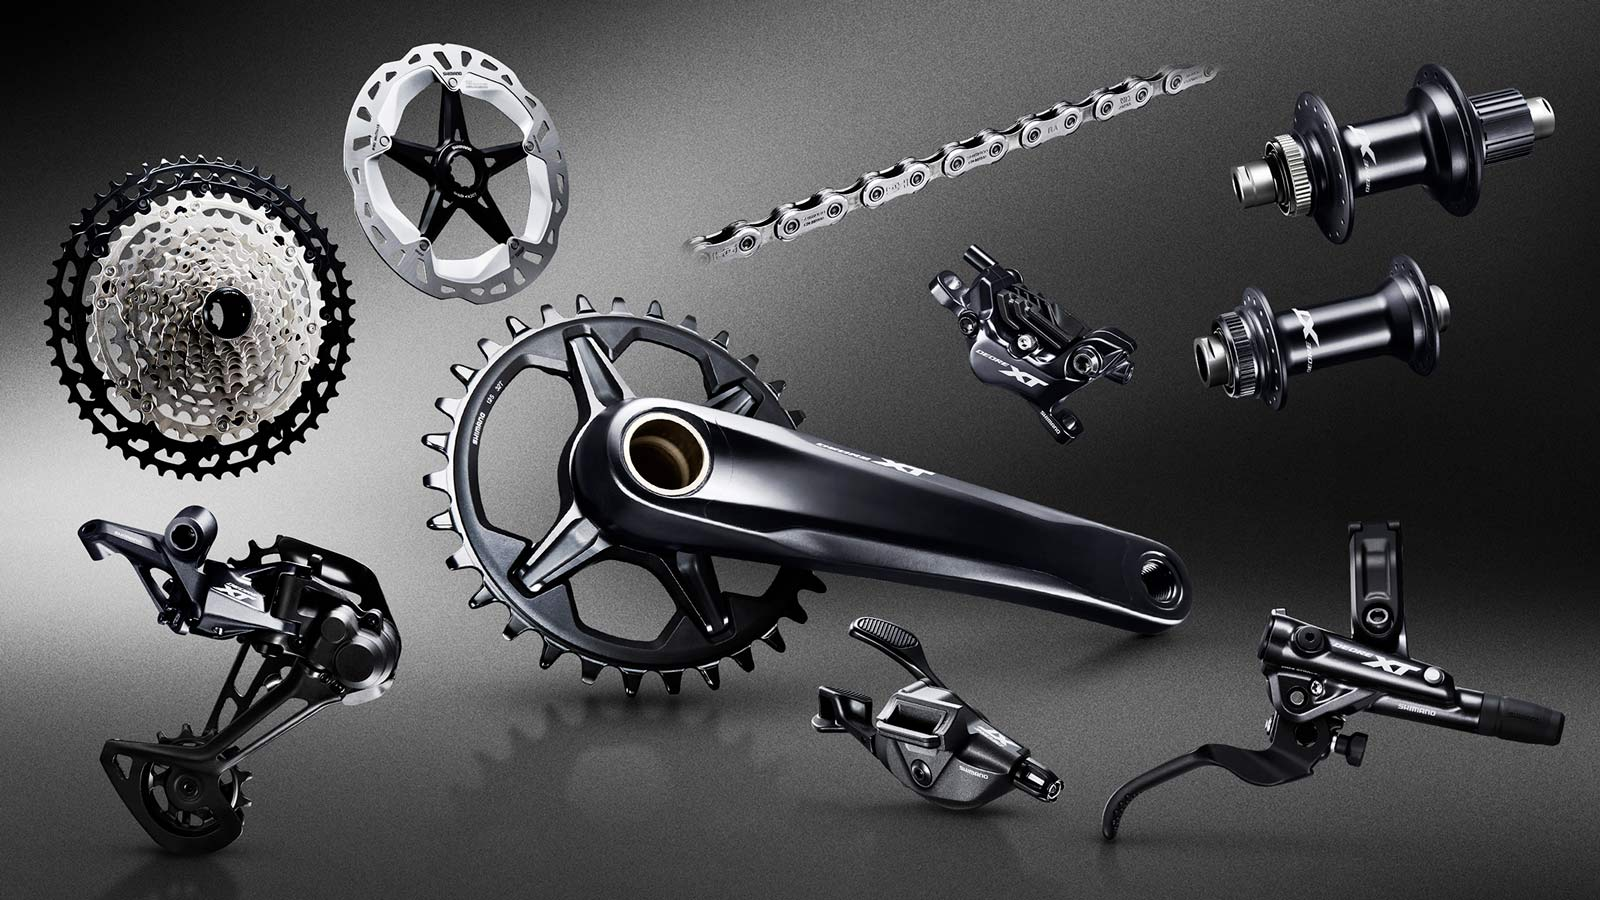 Shimano XT M8100 and SLX M7100 - complete price, spec